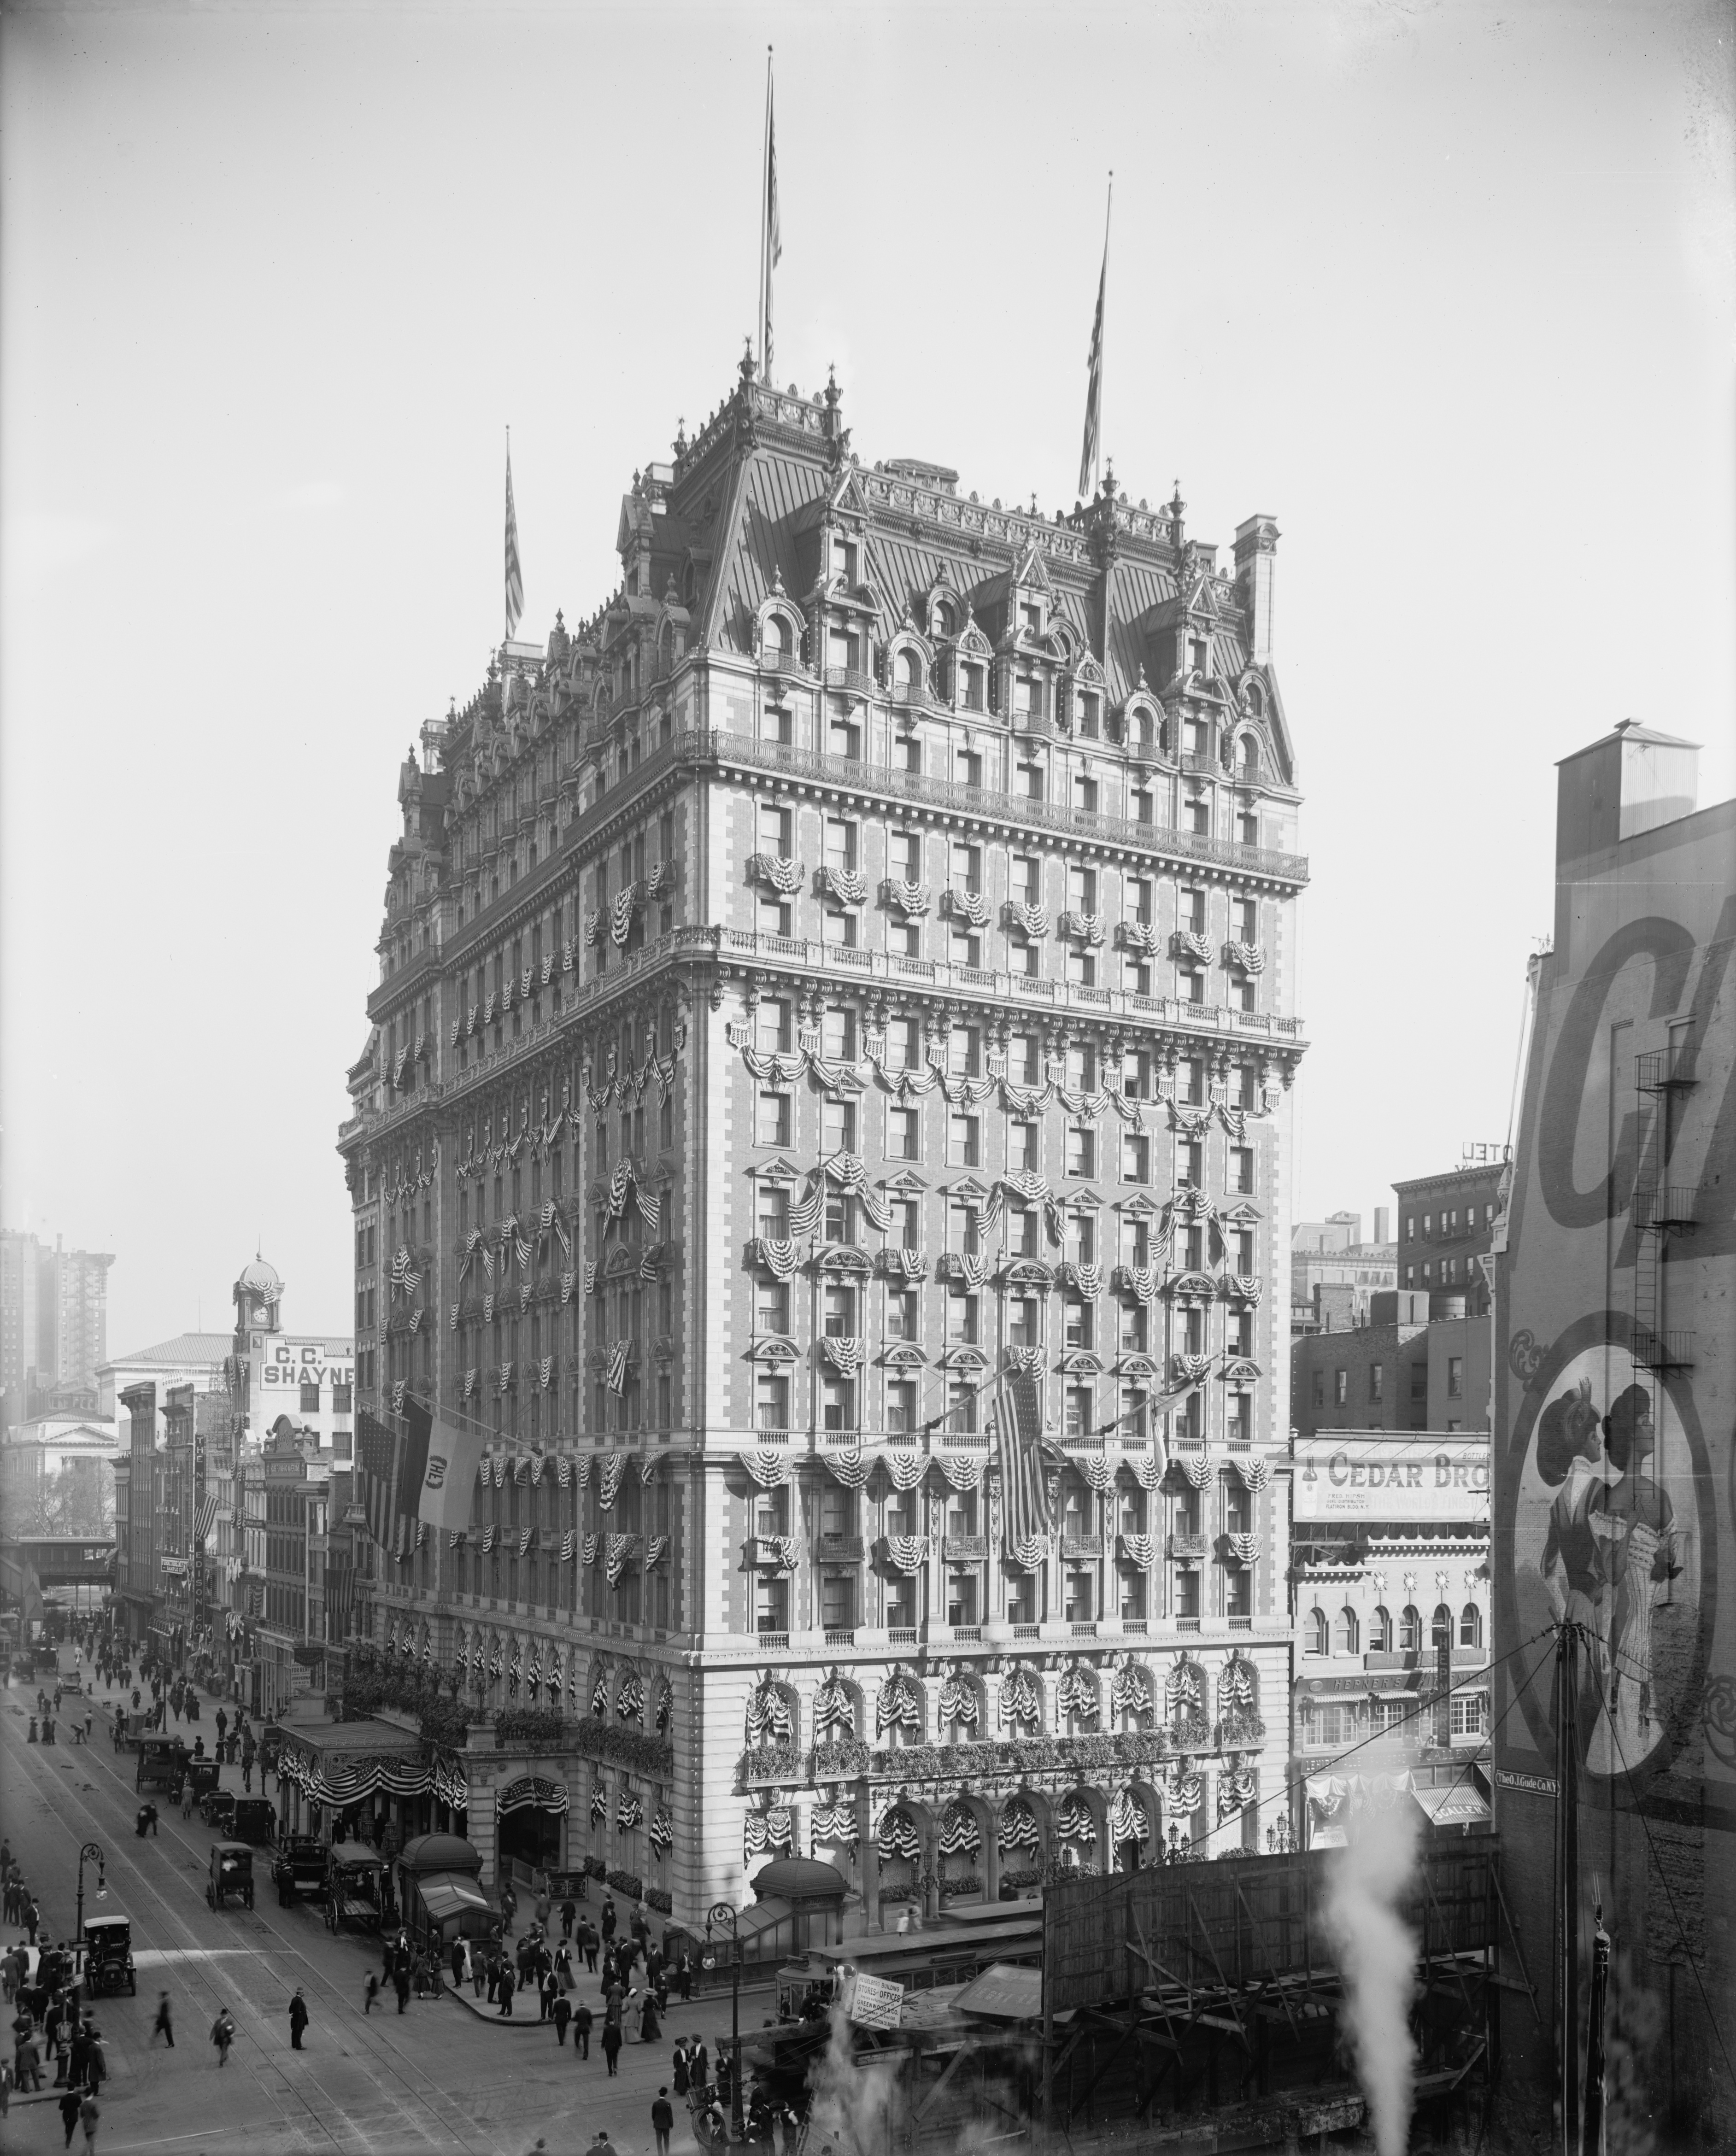 18 And Older Hotels In New York: The Secret Entrance To The Knickerbocker Hotel